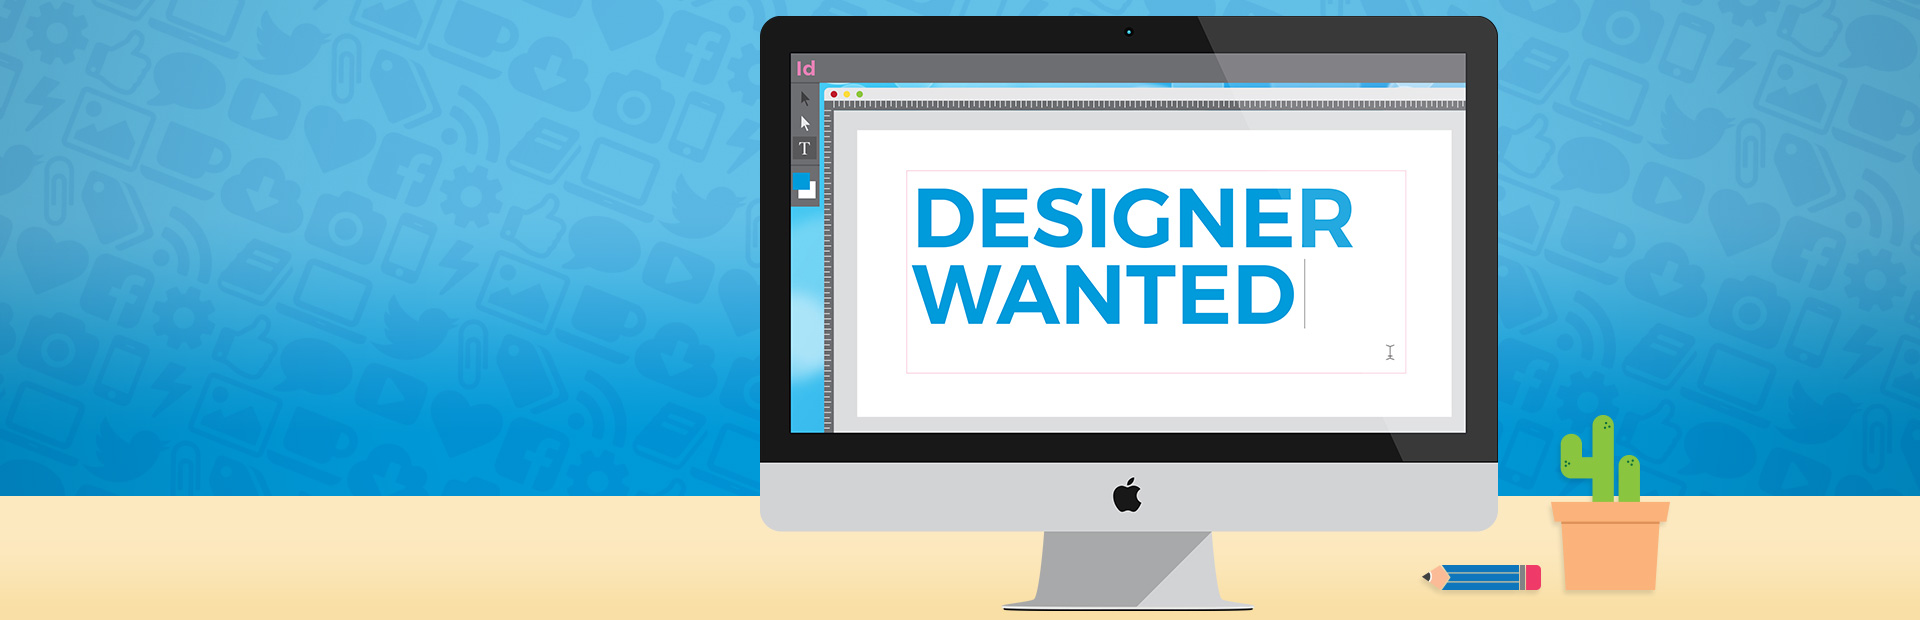 Dc Presents: Designer Wanted